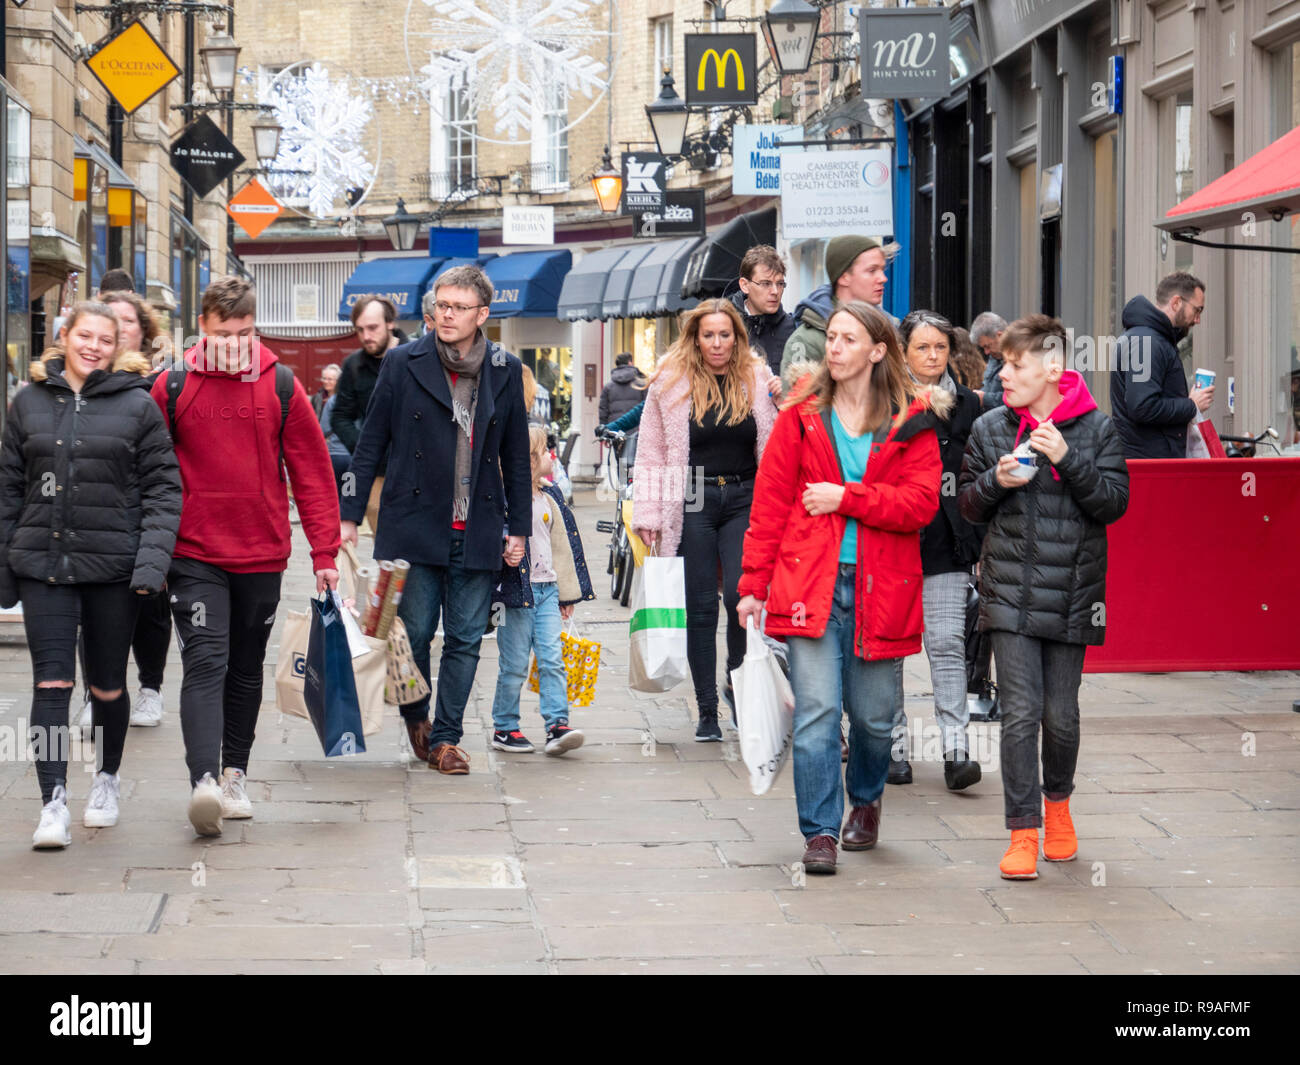 Cambridge, Cambridgeshire, UK. 21st December 2018.  The streets of Cambridge city centre are busy with people doing their Christmas shopping on the last Friday before Christmas.  Footfall appeared to be high with lots of people carrying shopping bags. Credit: Julian Eales/Alamy Live News - Stock Image